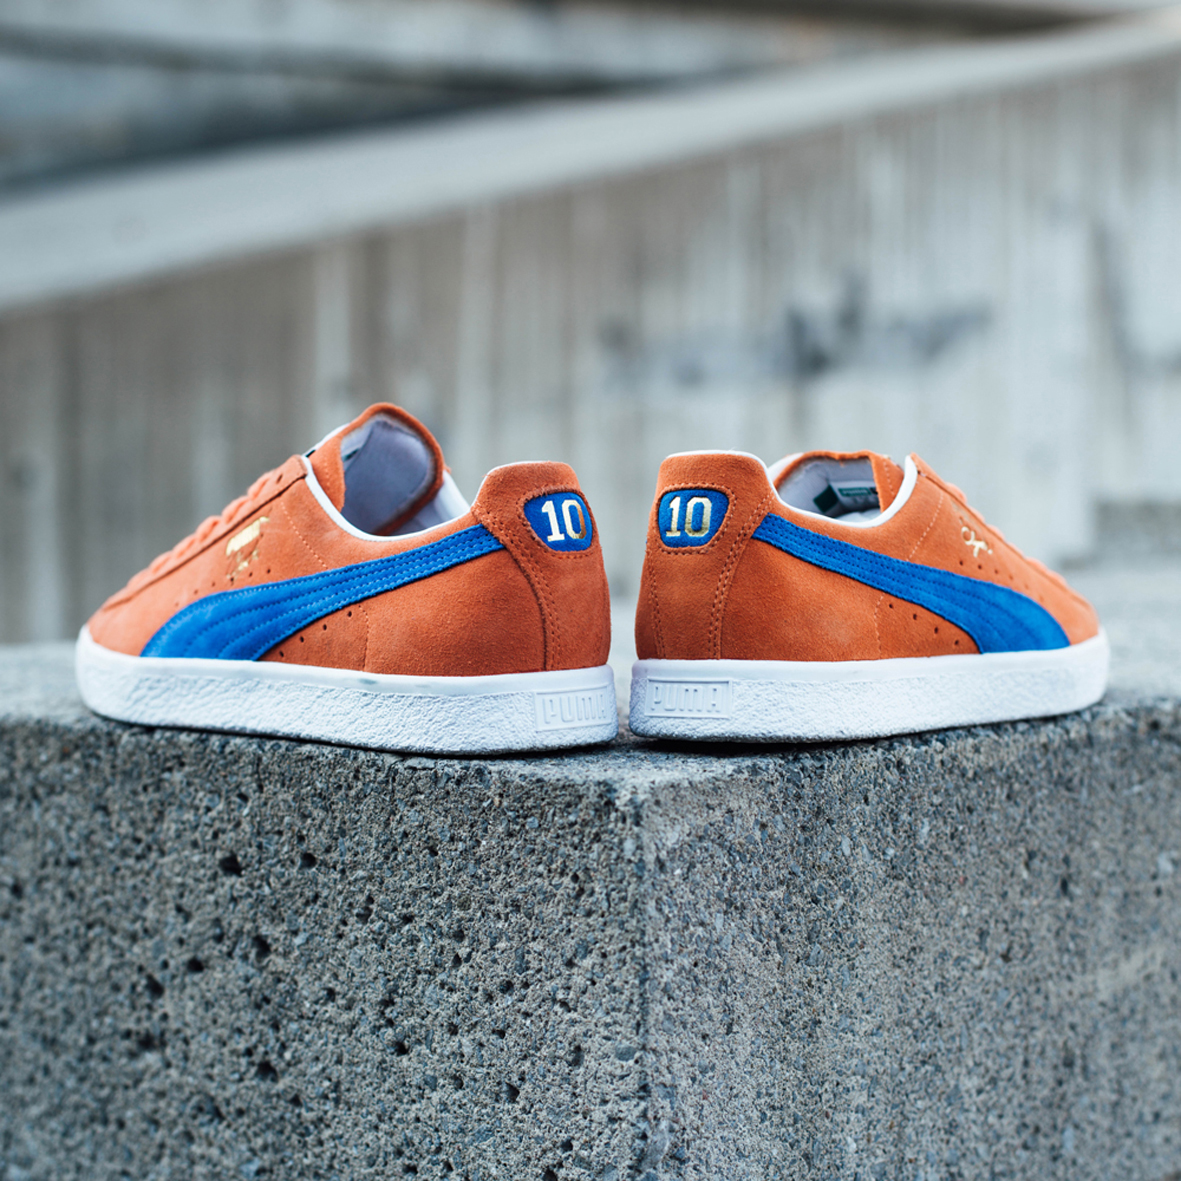 PUMA Releases The Clyde NYC Pack [SneakPeak] 16AW PUMA ClydeSuits LR 3